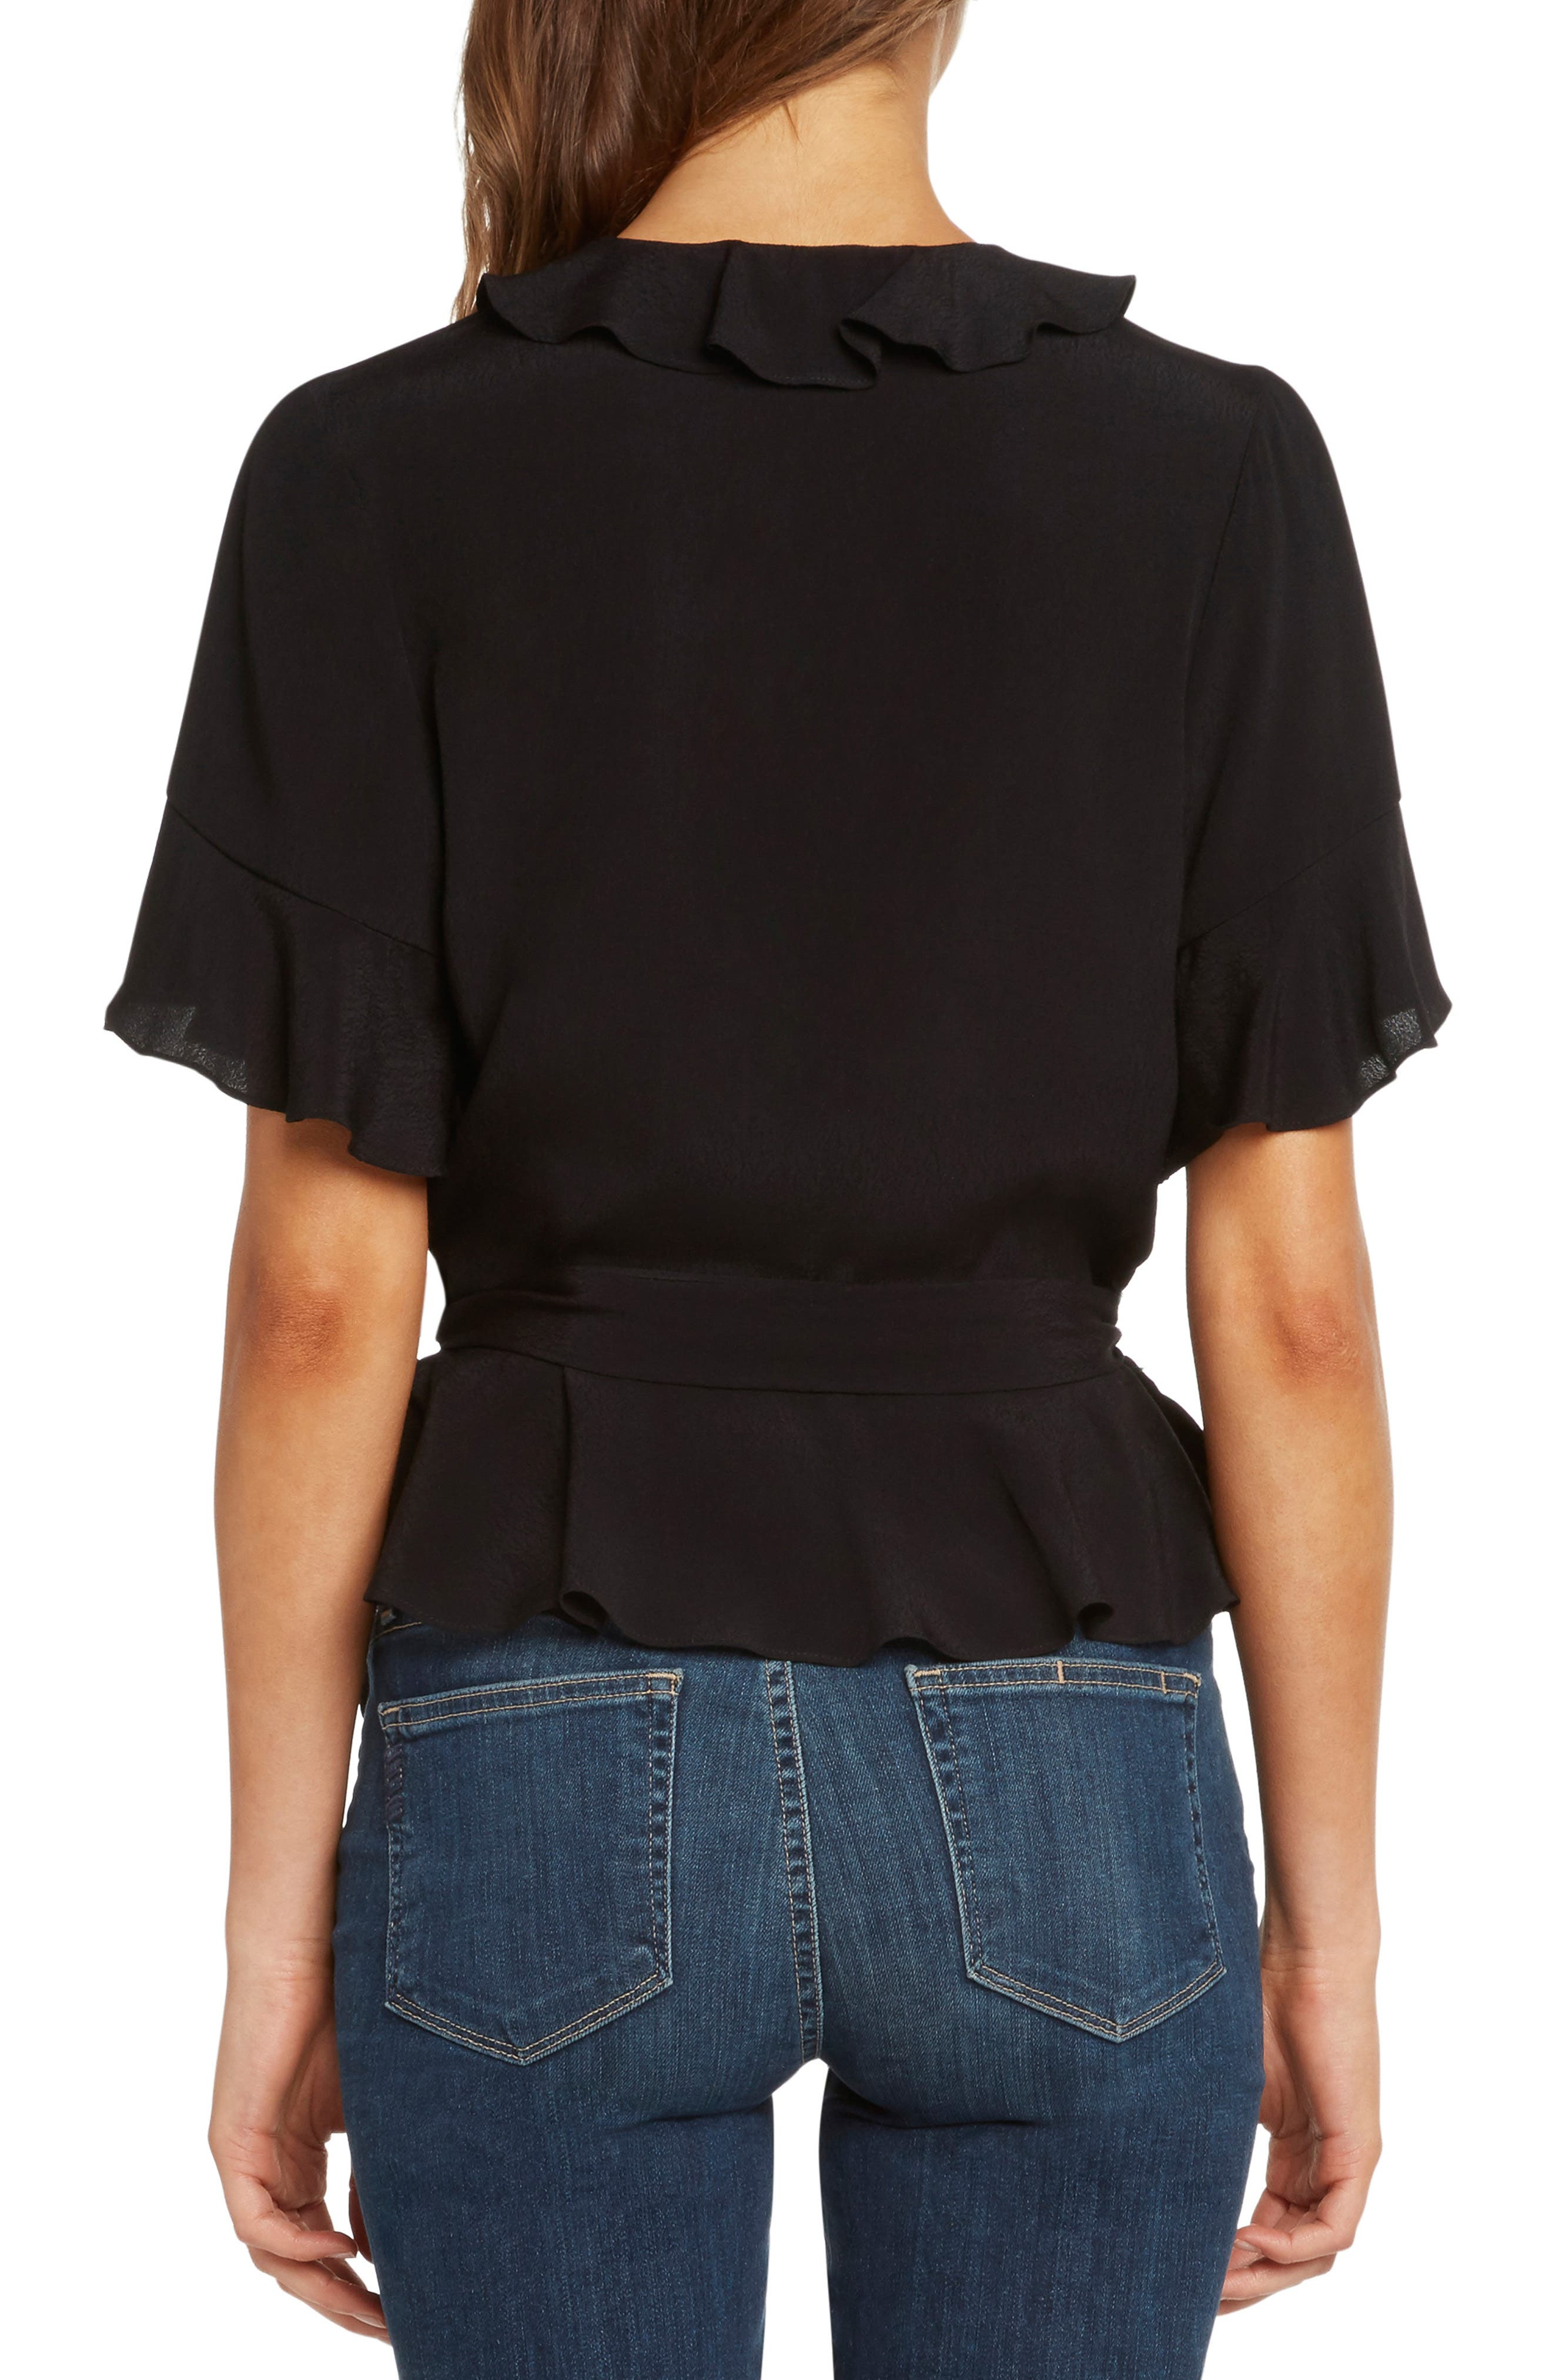 WILLOW & CLAY,                             Ruffle Wrap Top,                             Alternate thumbnail 2, color,                             001